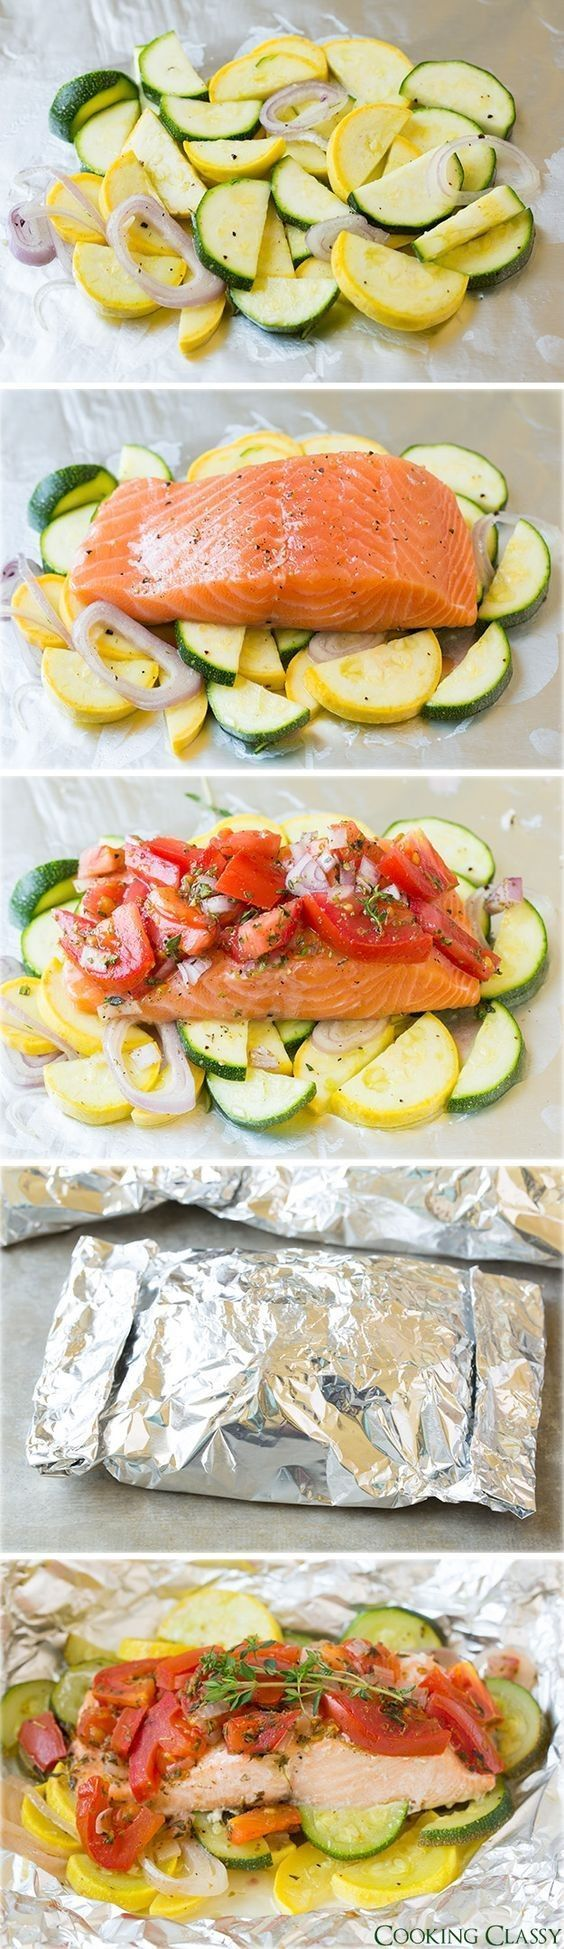 5 Low-Carb Recipes With Over 90K Repins on Pinterest! Gymvets.com #gymvets…